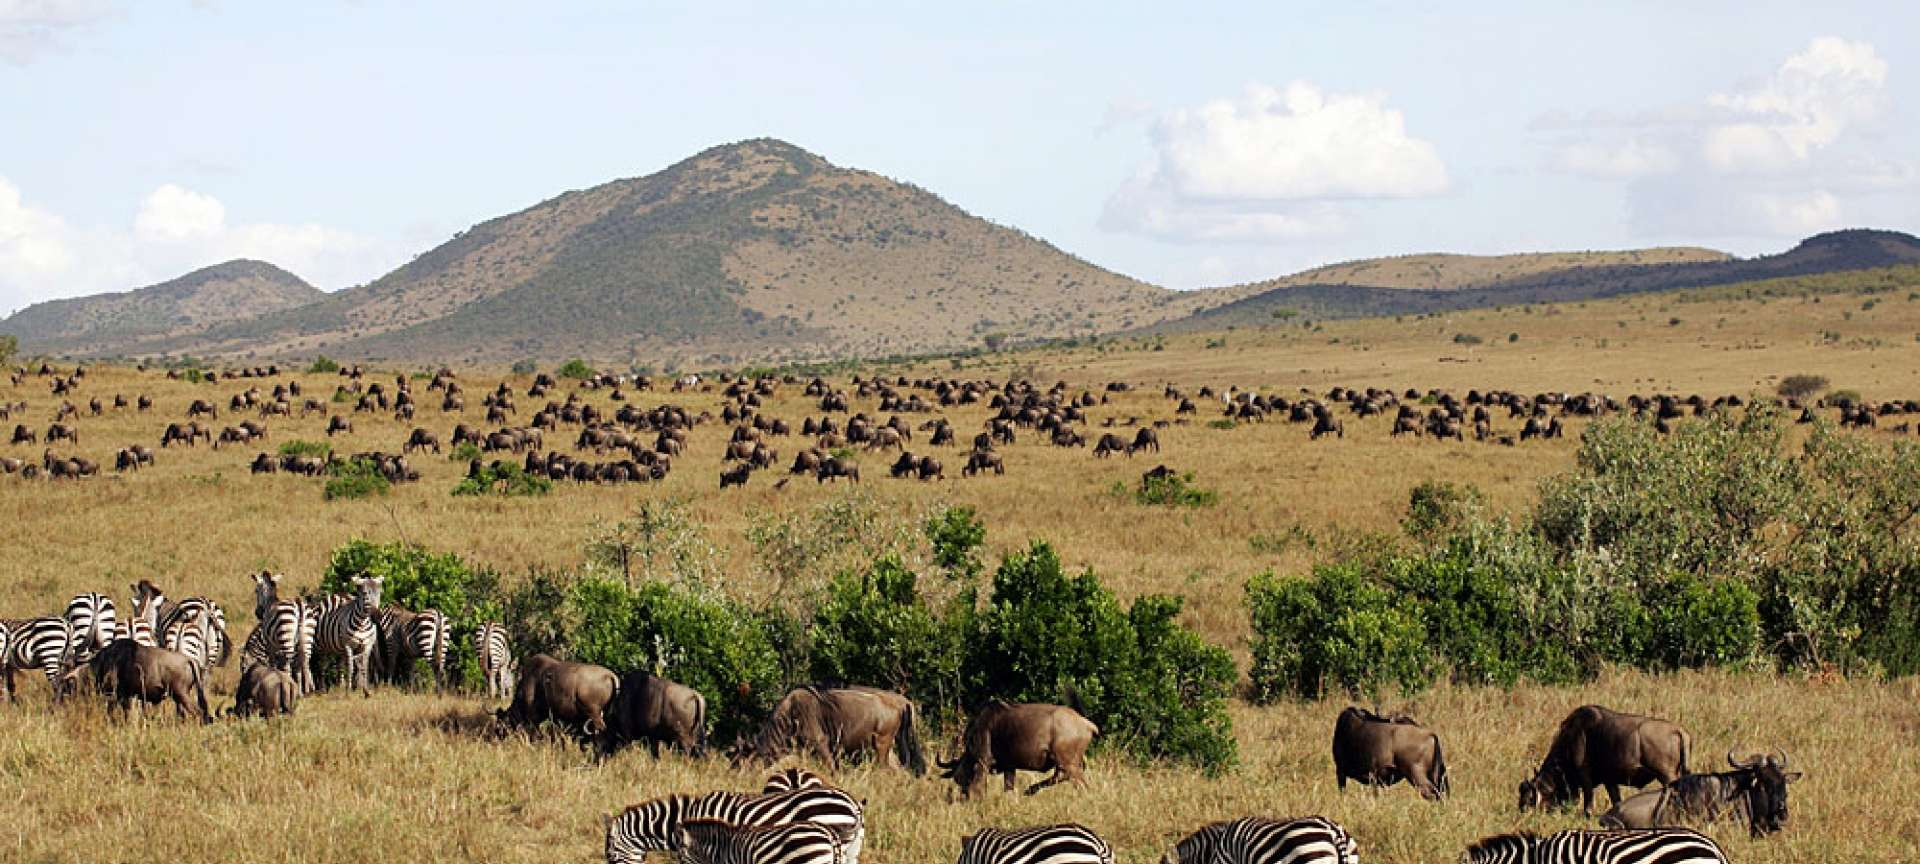 Tanzania in January is generally a busy time for the game parks